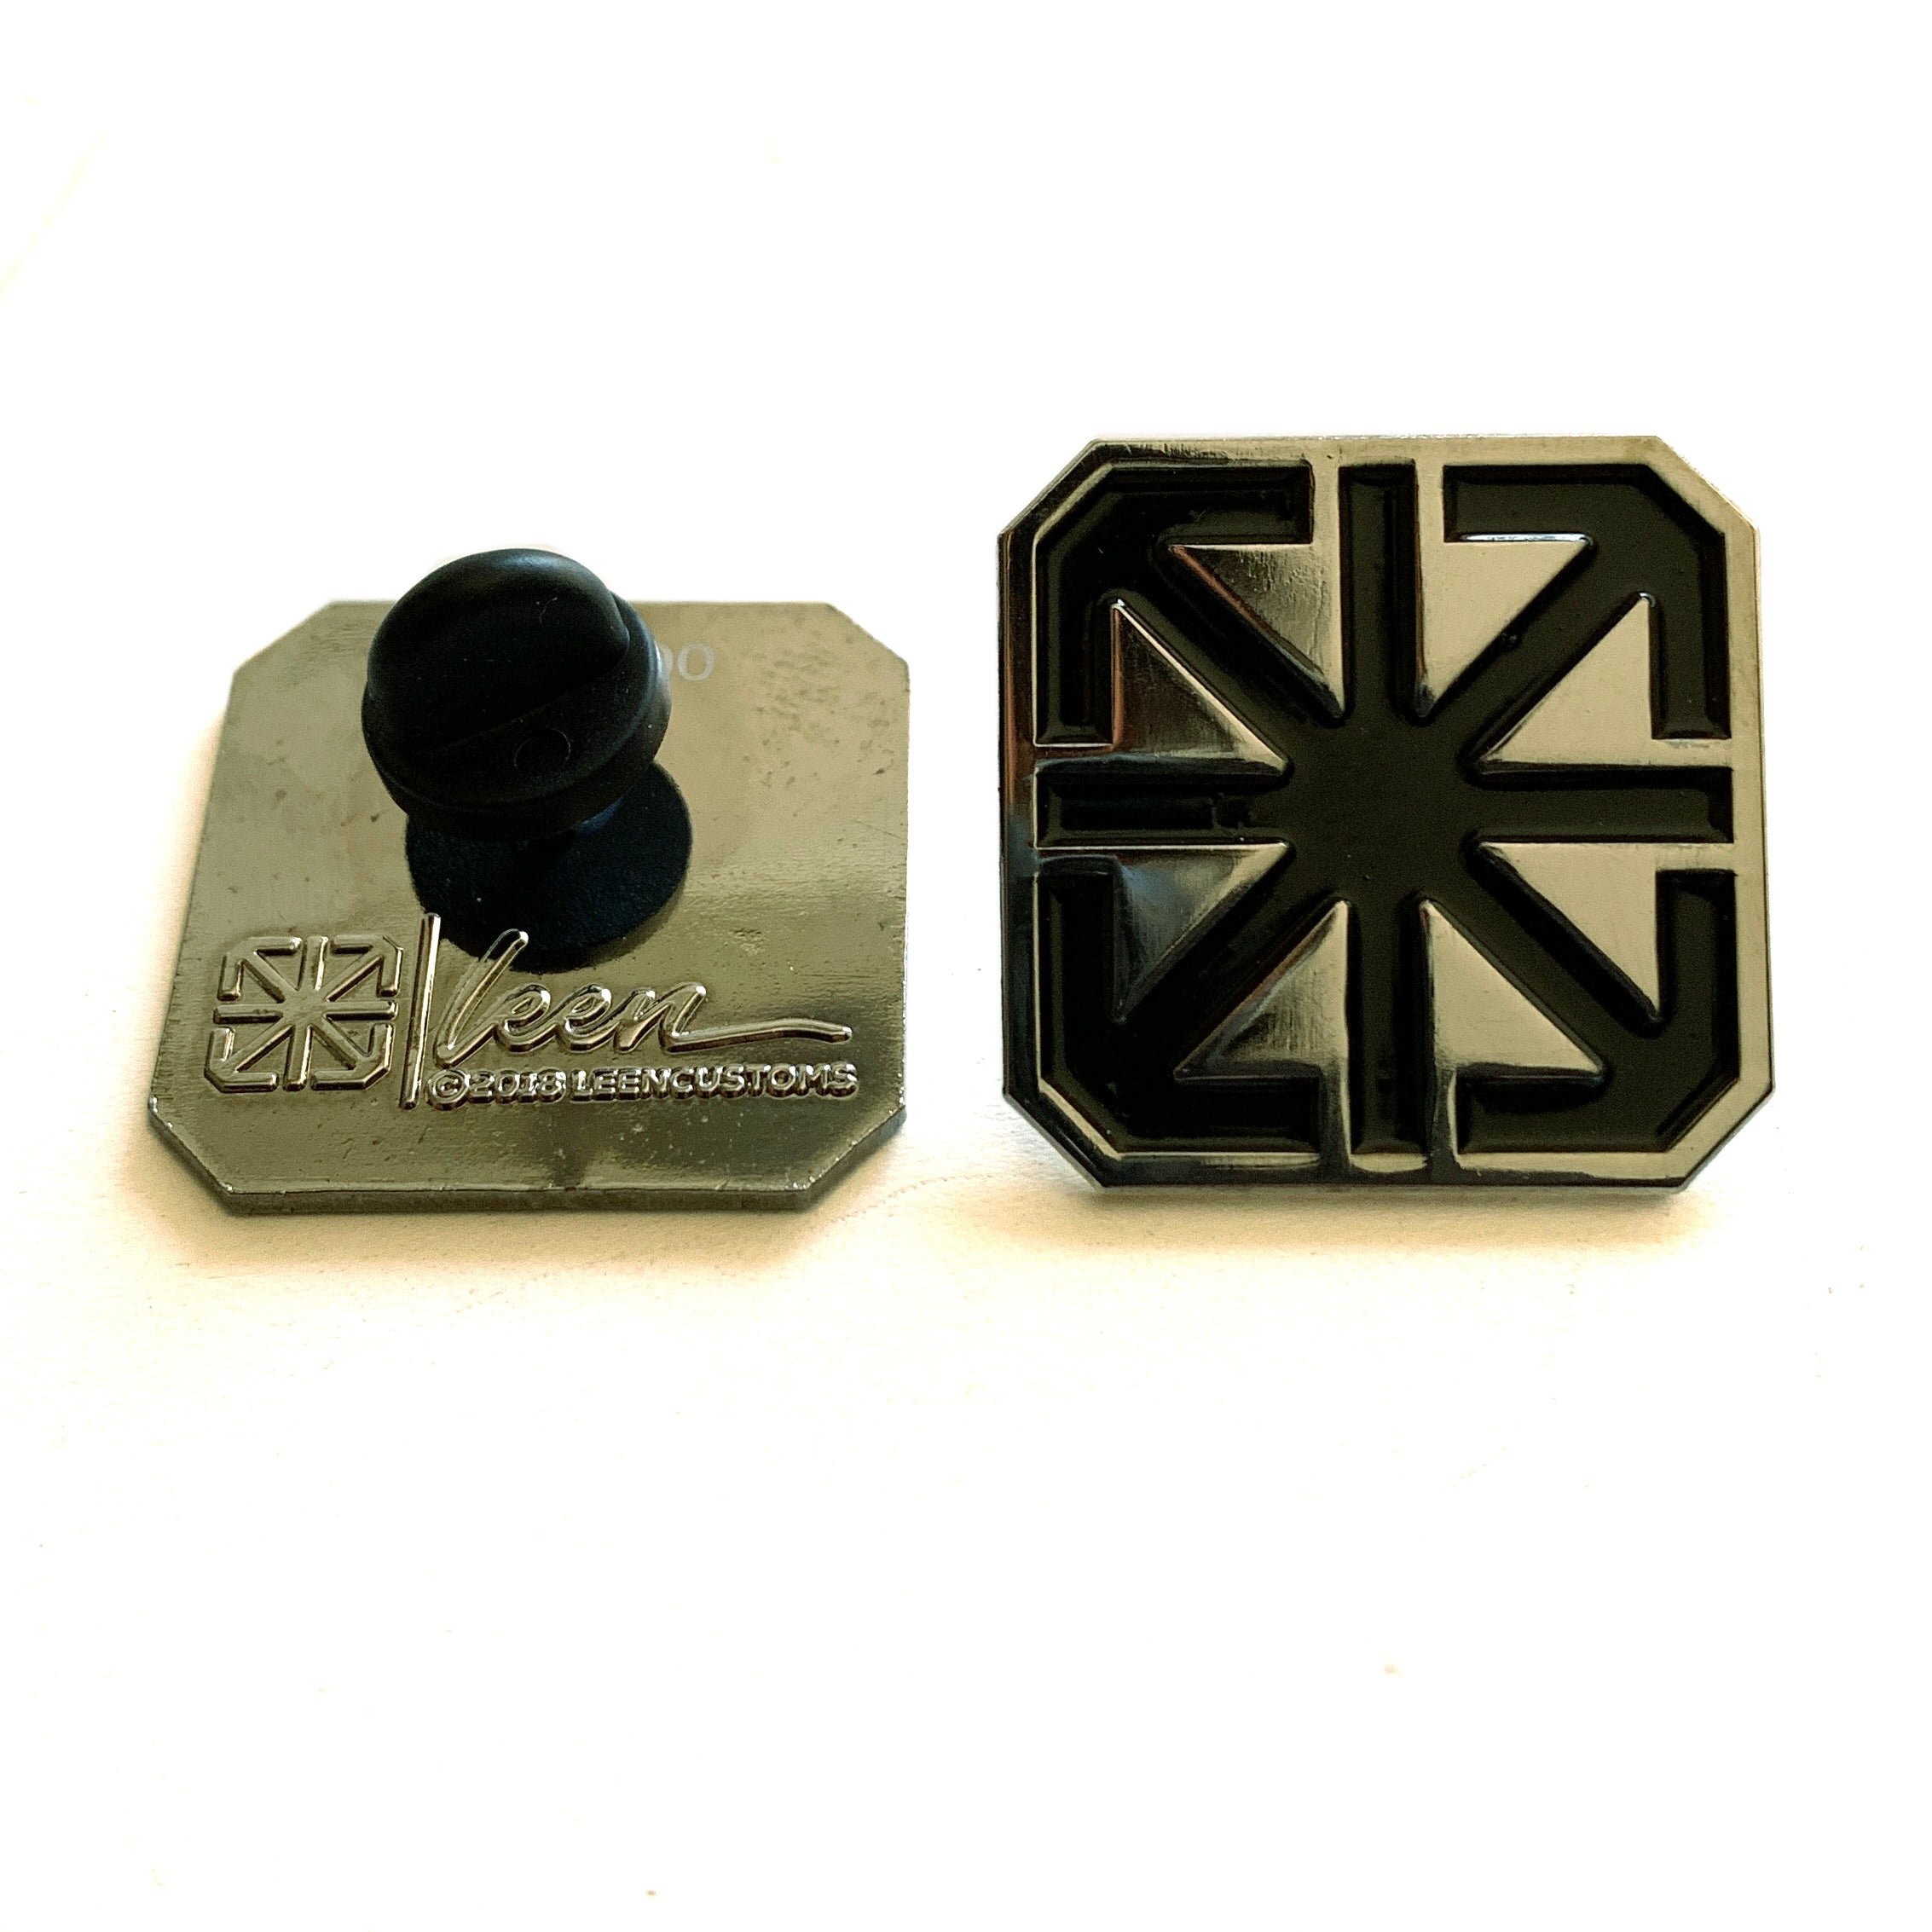 TSL ICON LAPEL PIN / BLACK ON GUN METAL EDITION